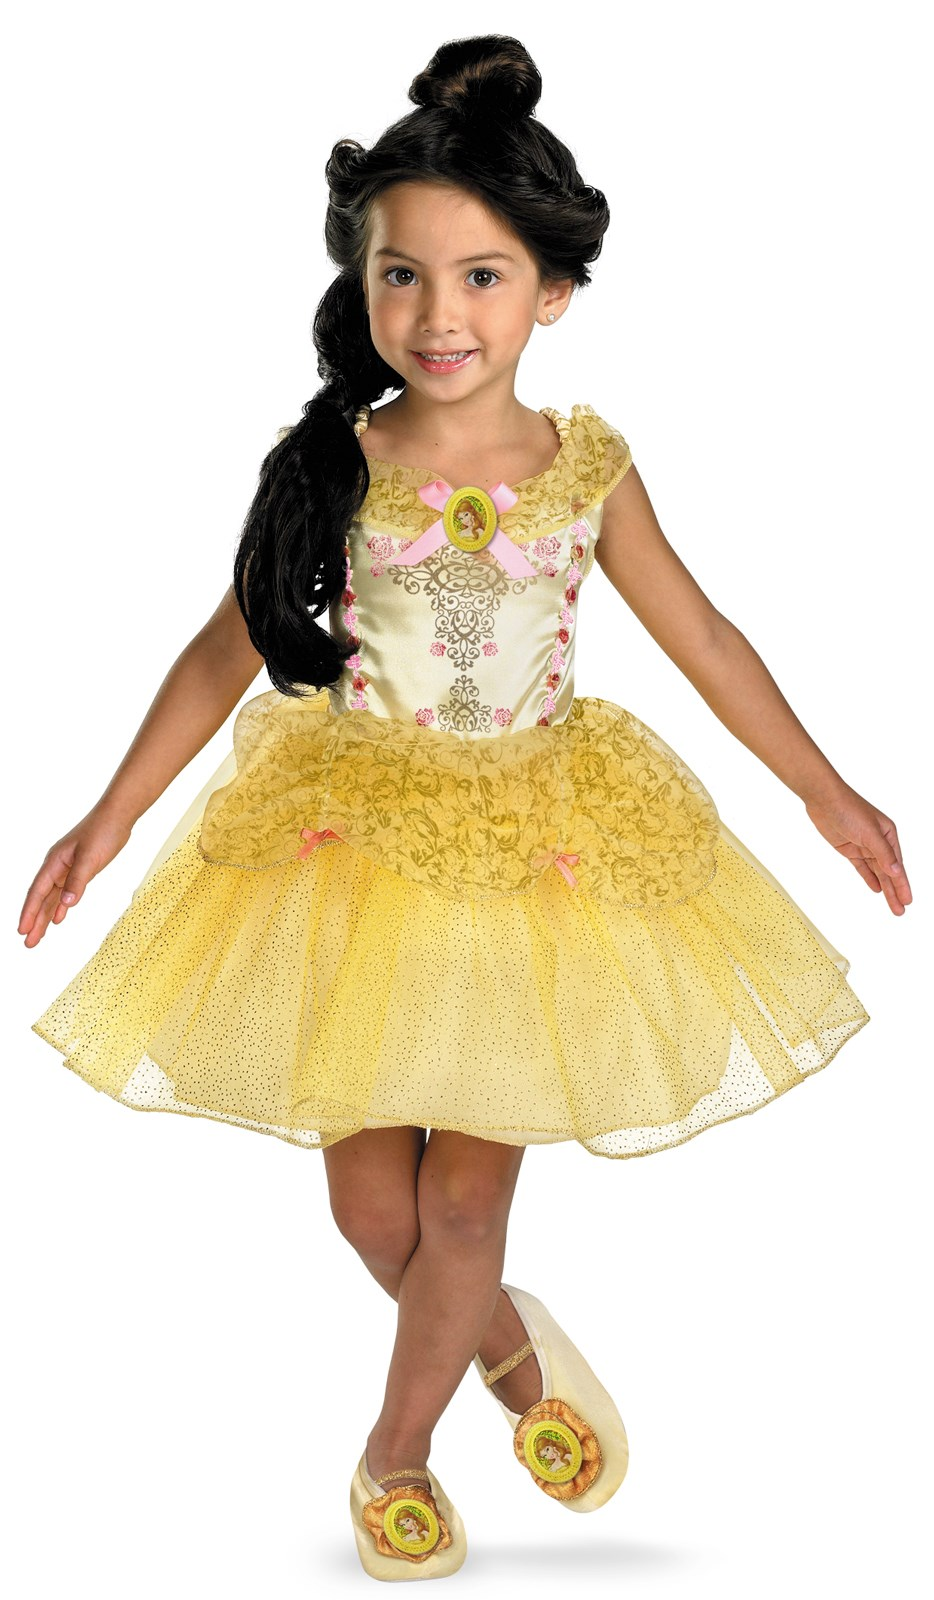 Beauty and the Beast Belle Ballerina Toddler / Child Costume Toddler (2T)